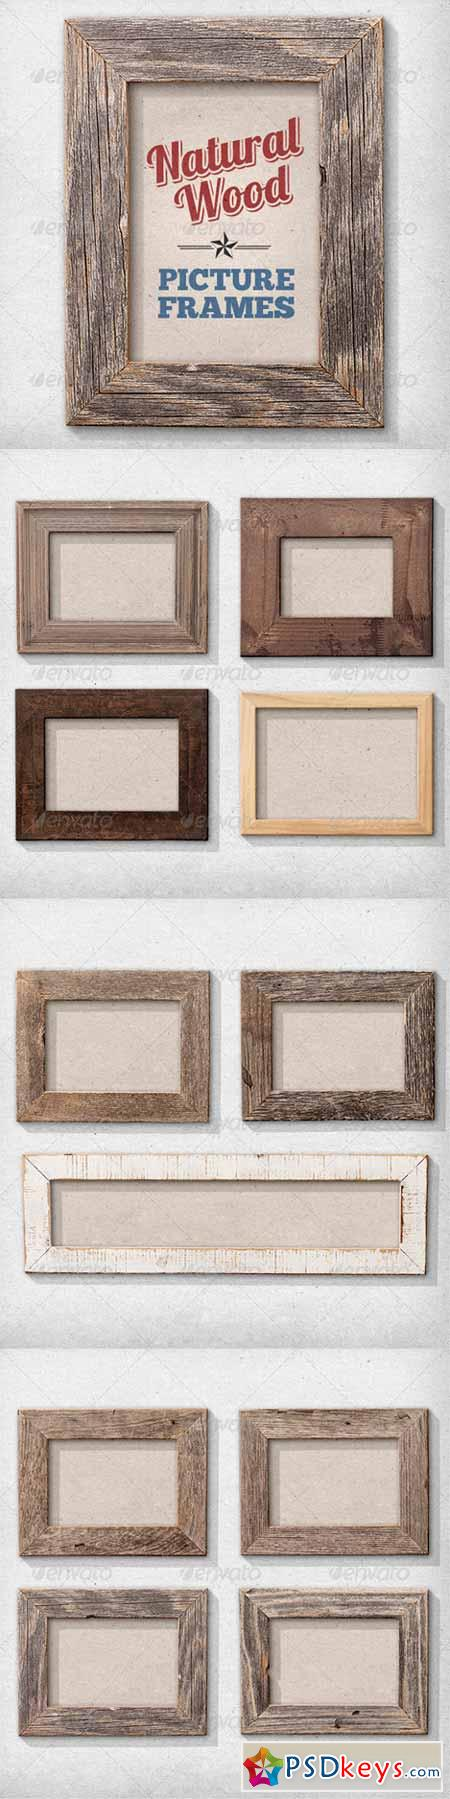 11 Isolated Natural Wood Picture Frames 2686798